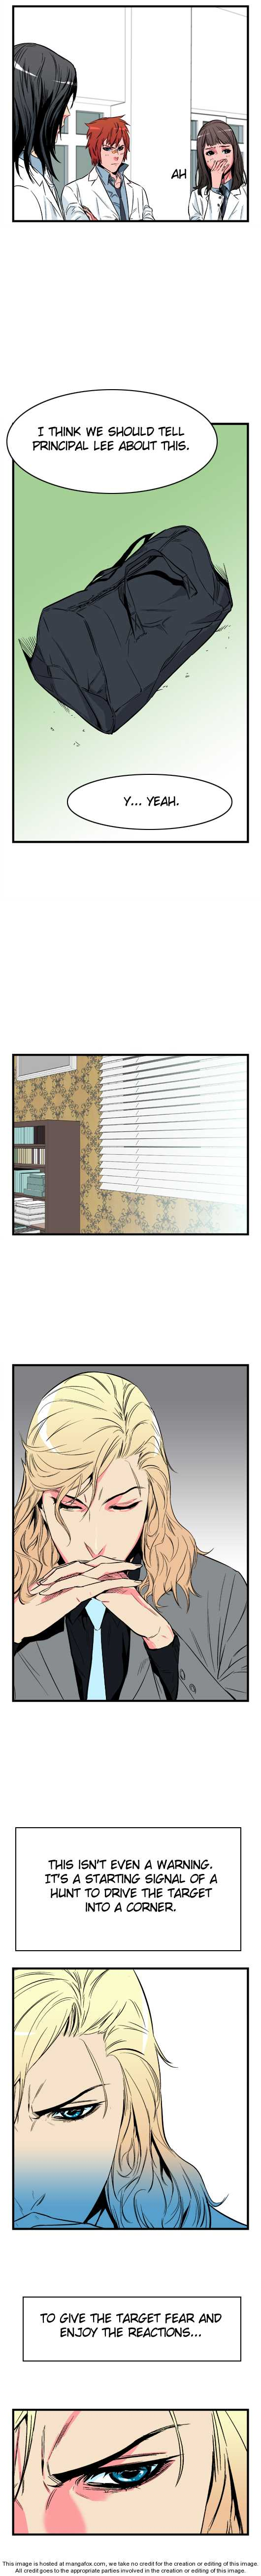 Noblesse 25 Page 3